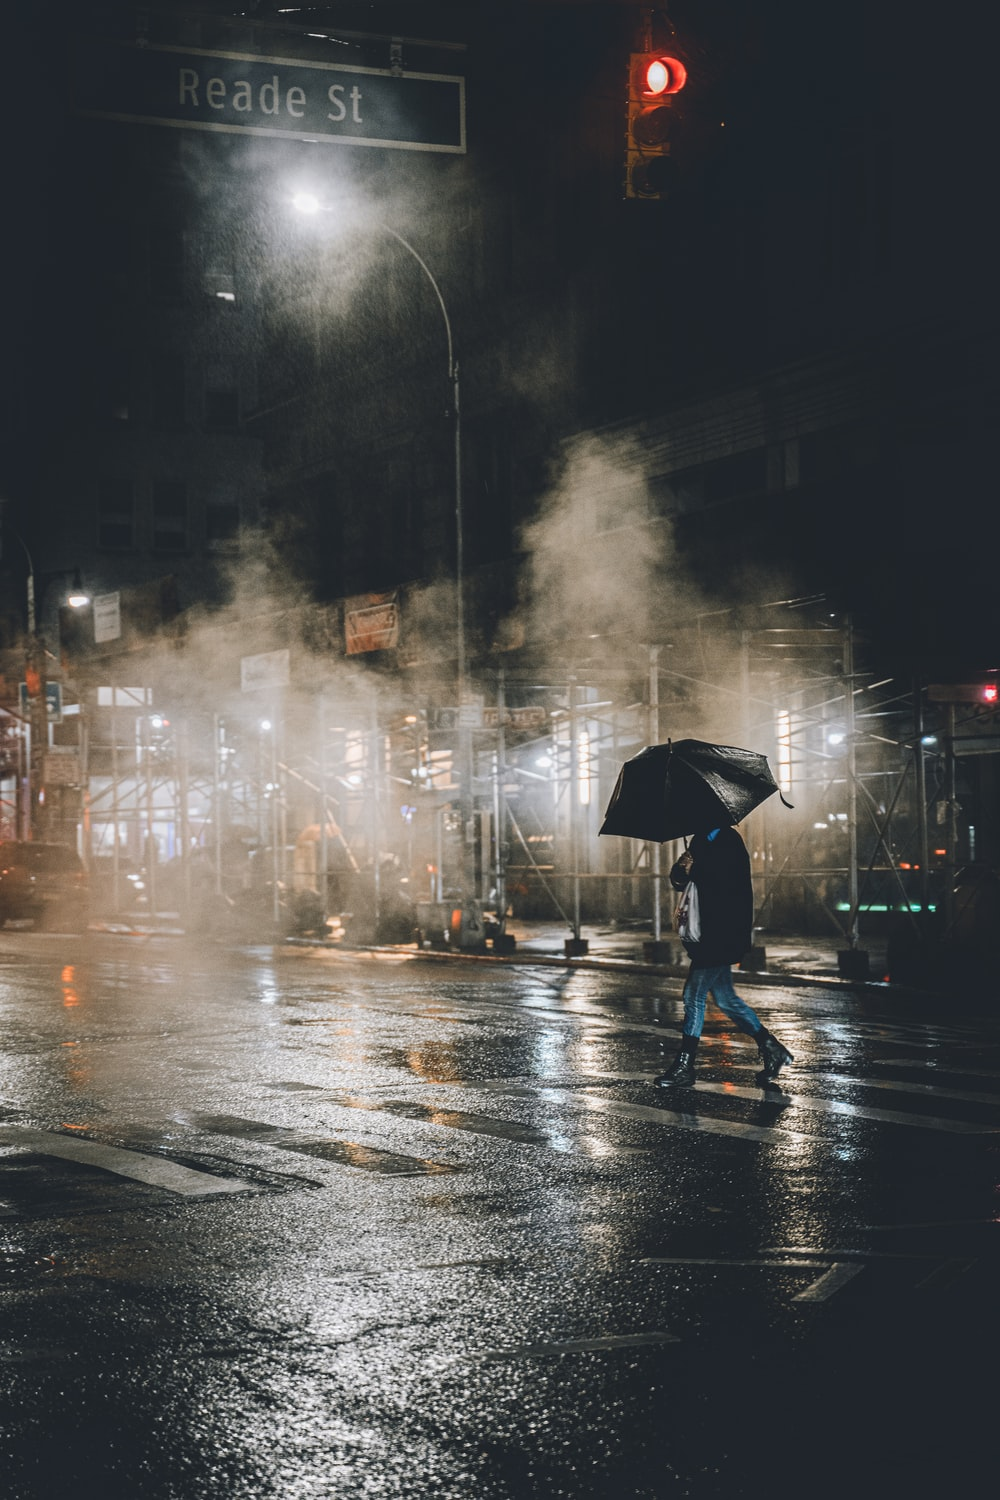 person in black jacket holding umbrella walking on street during rainy day